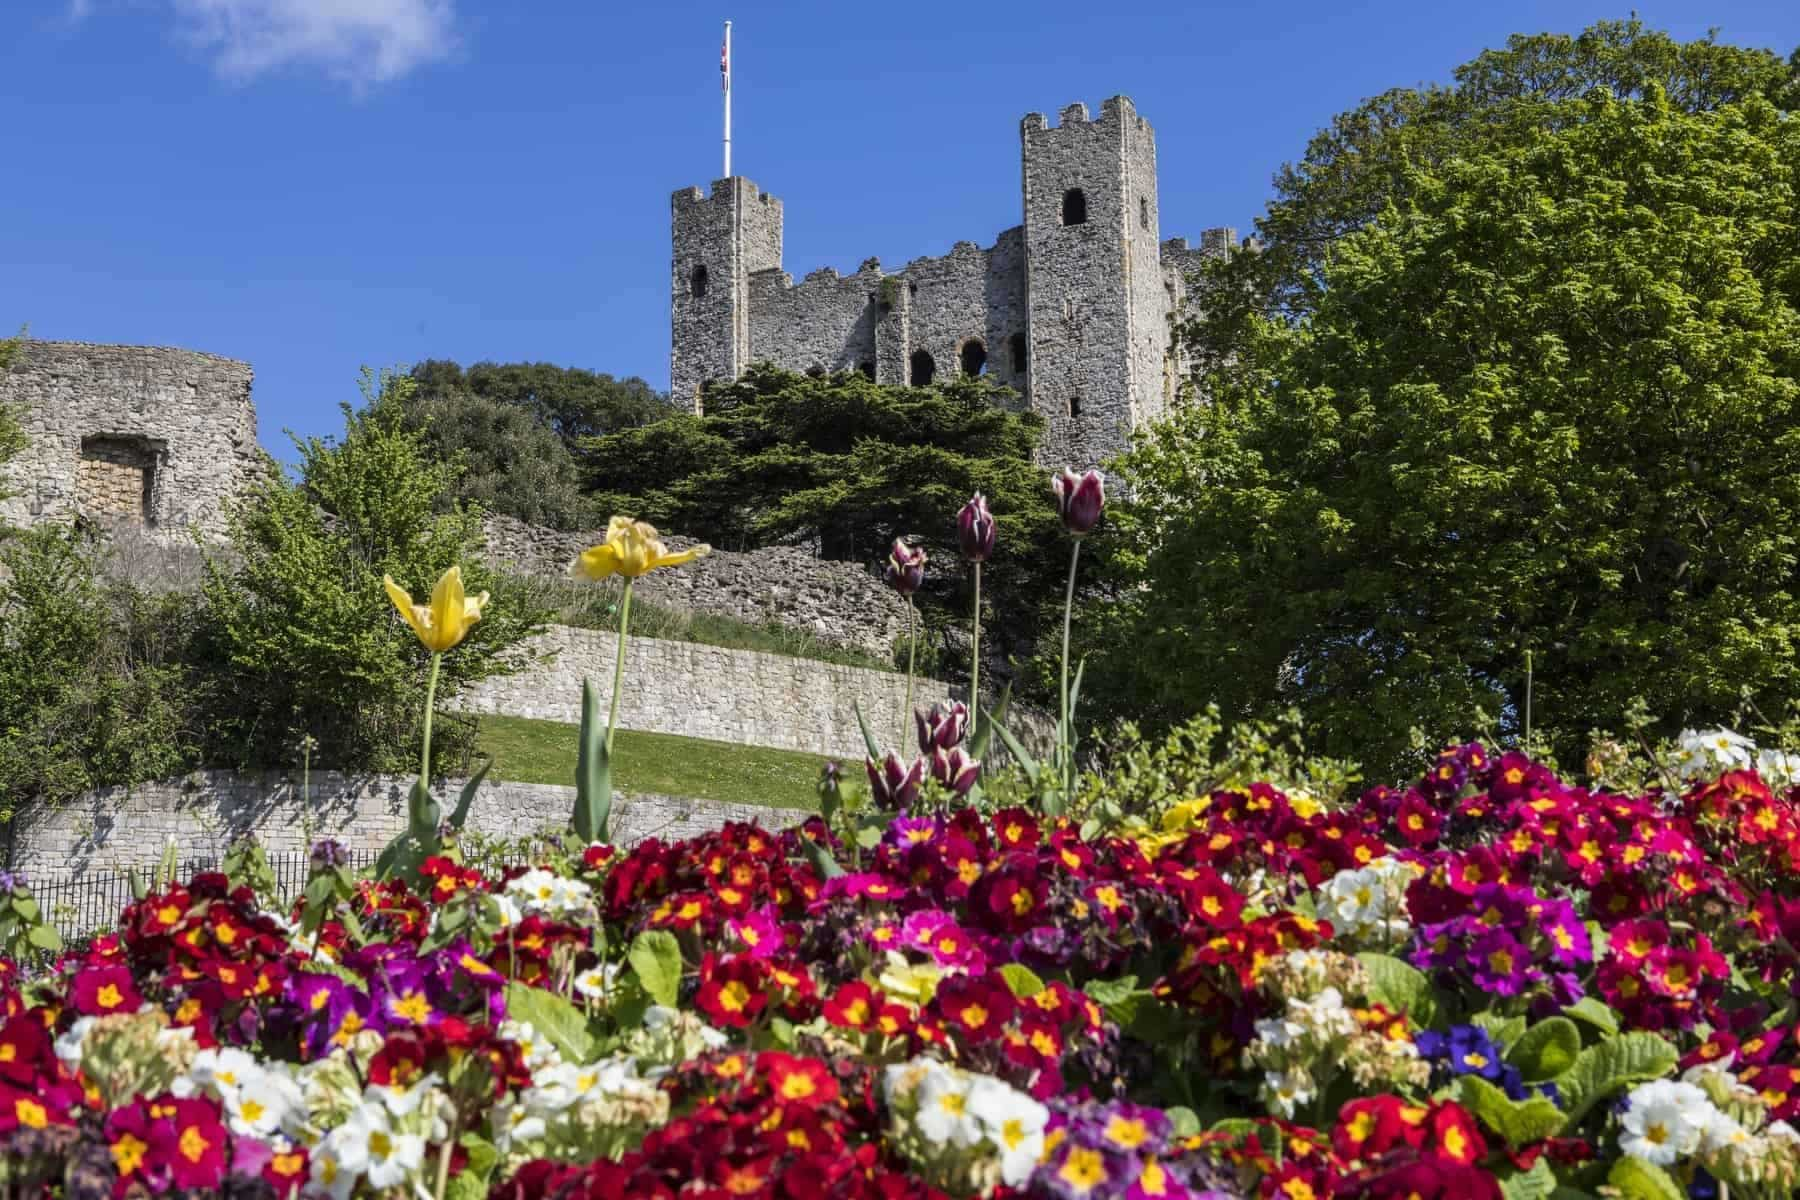 A view of Rochester Castle with beautiful flowers in the foreground, in the historic city of Rochester in Kent, UK.